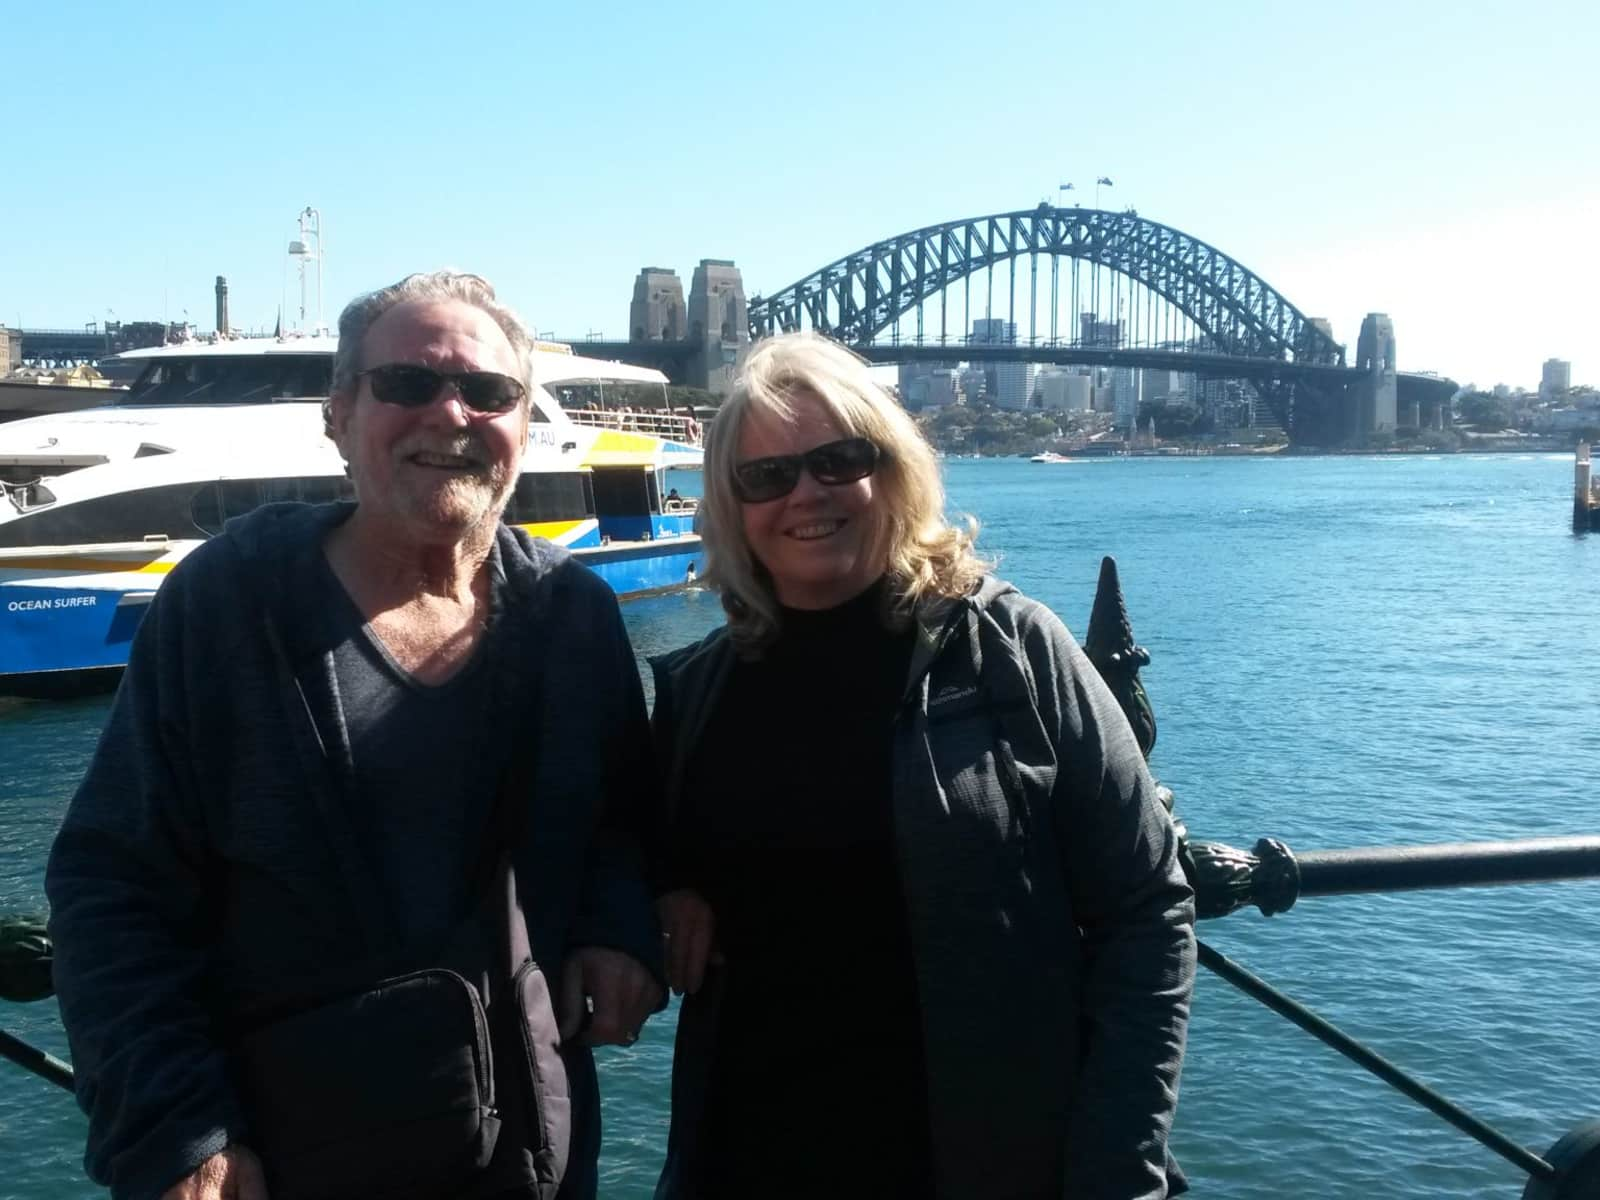 June & William (bill) from Coffs Harbour, New South Wales, Australia